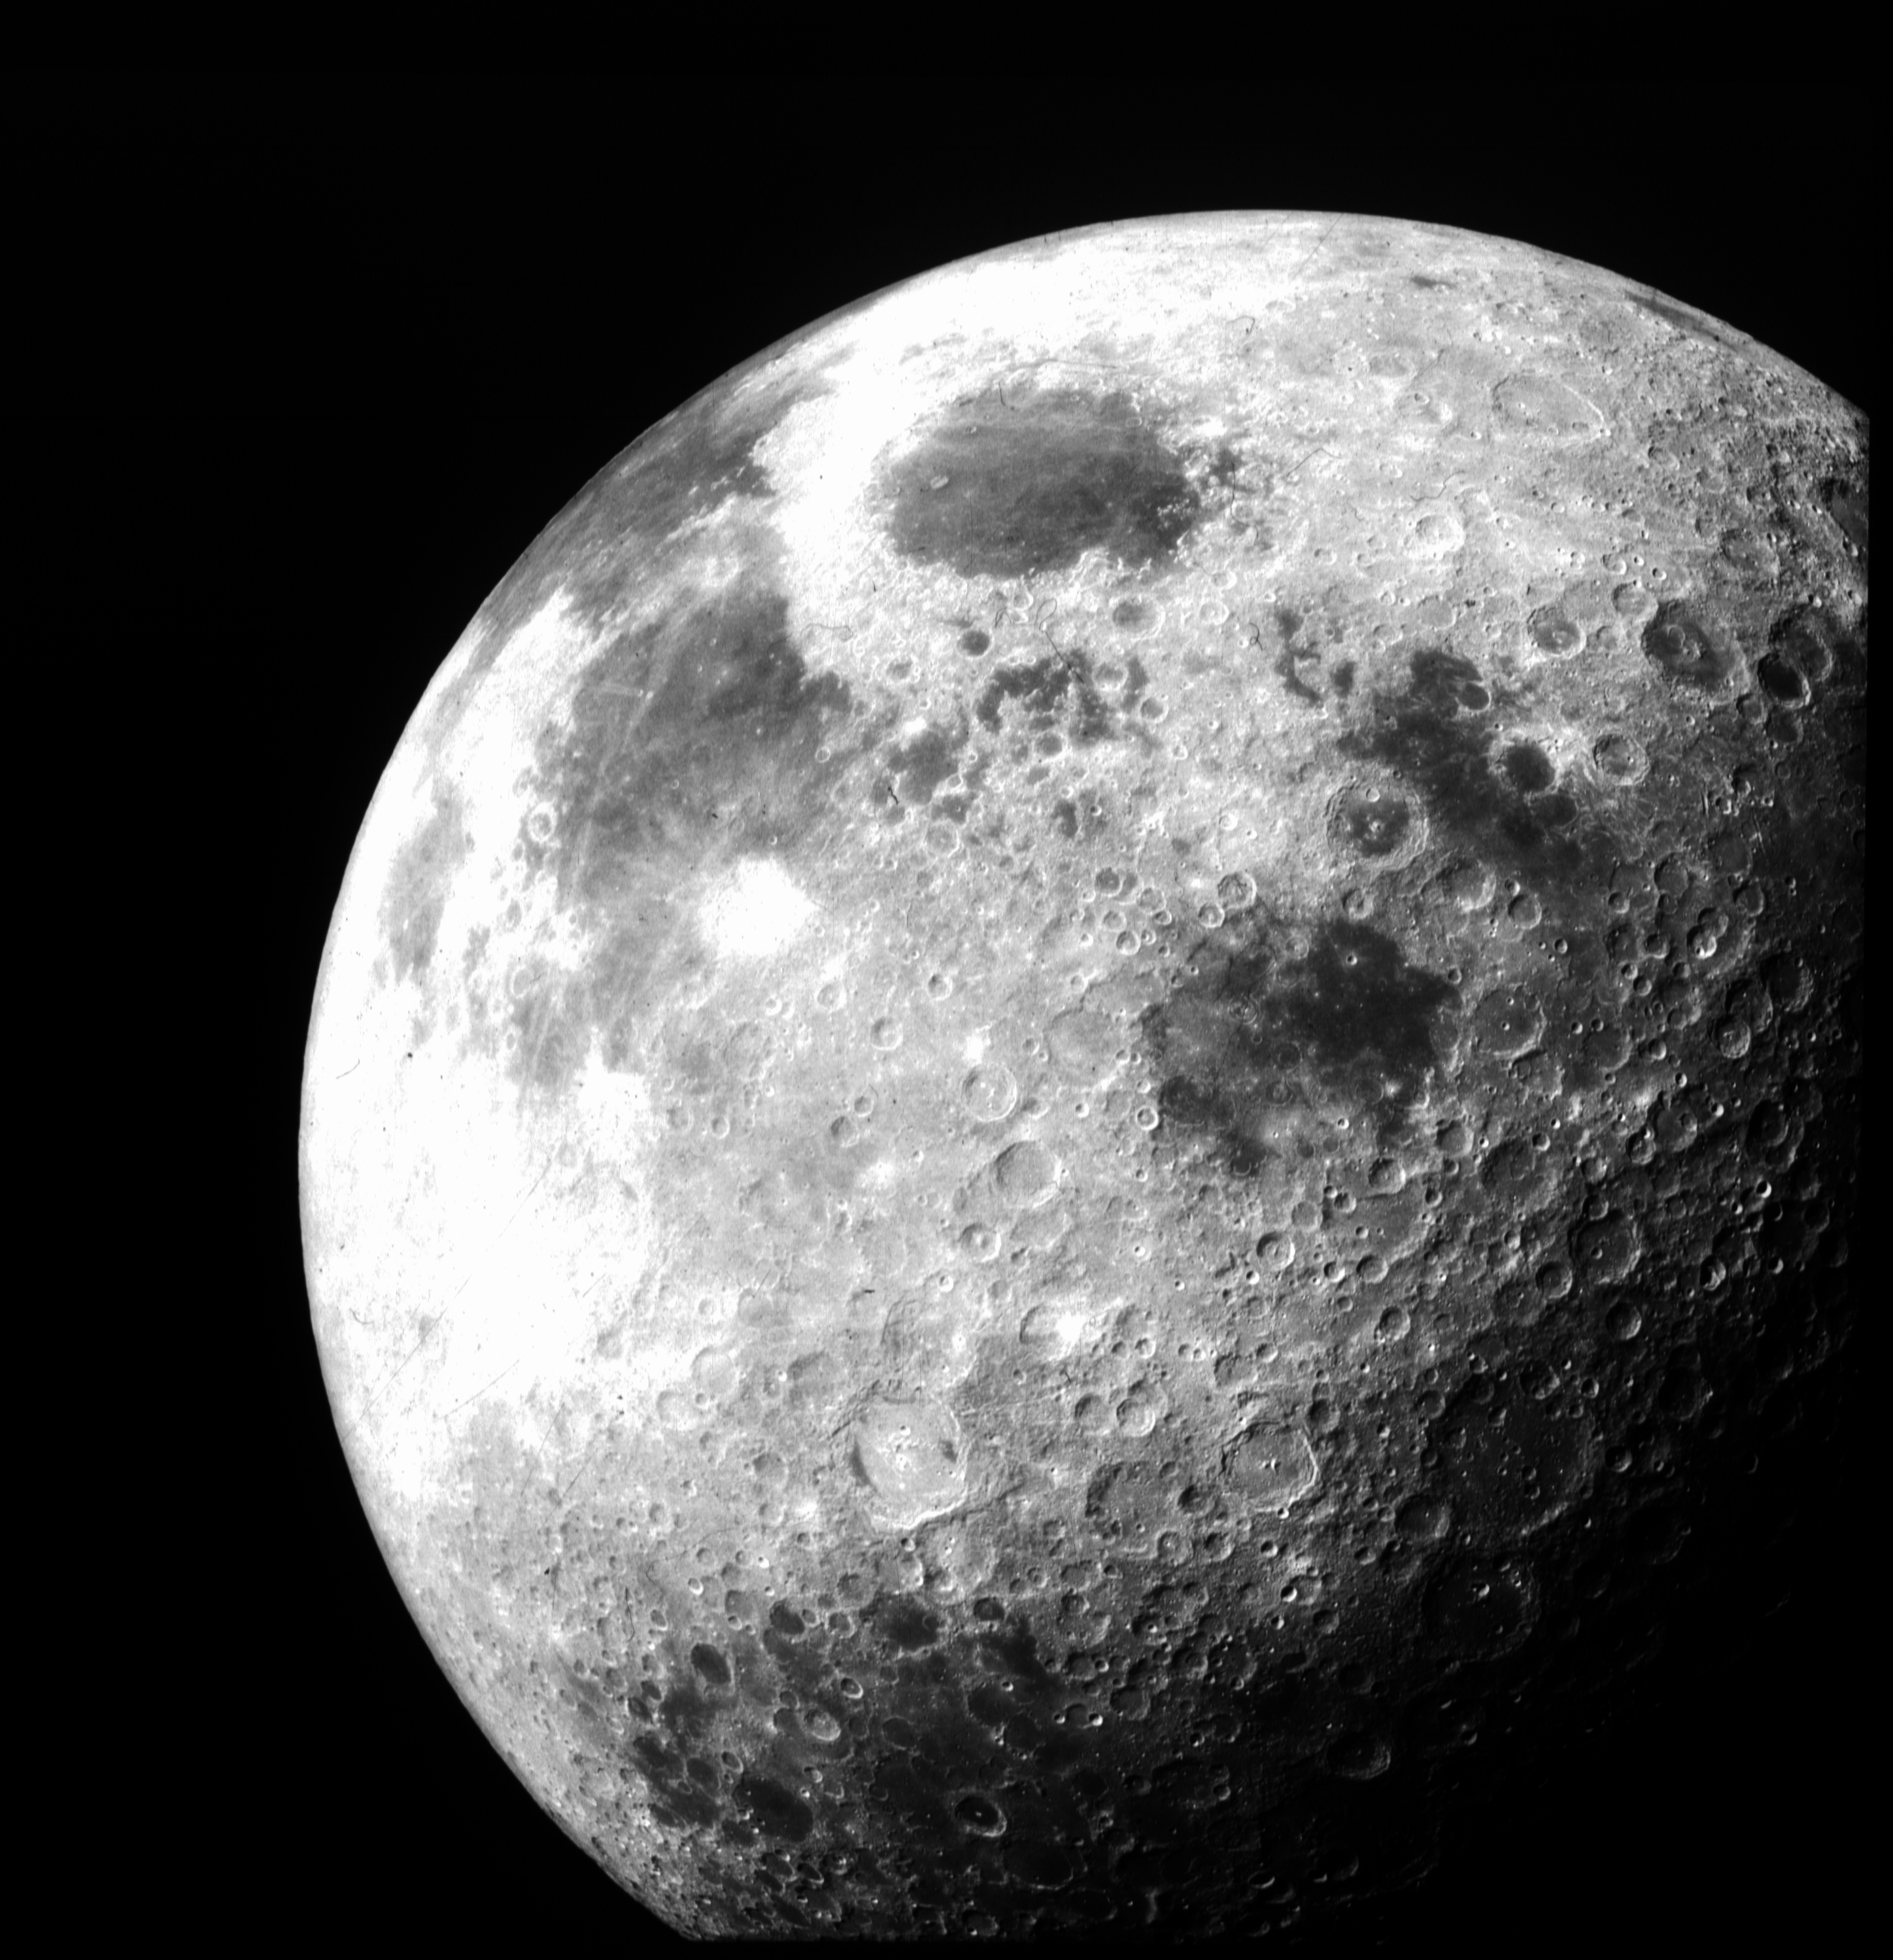 The moon as seen from Apollo 12